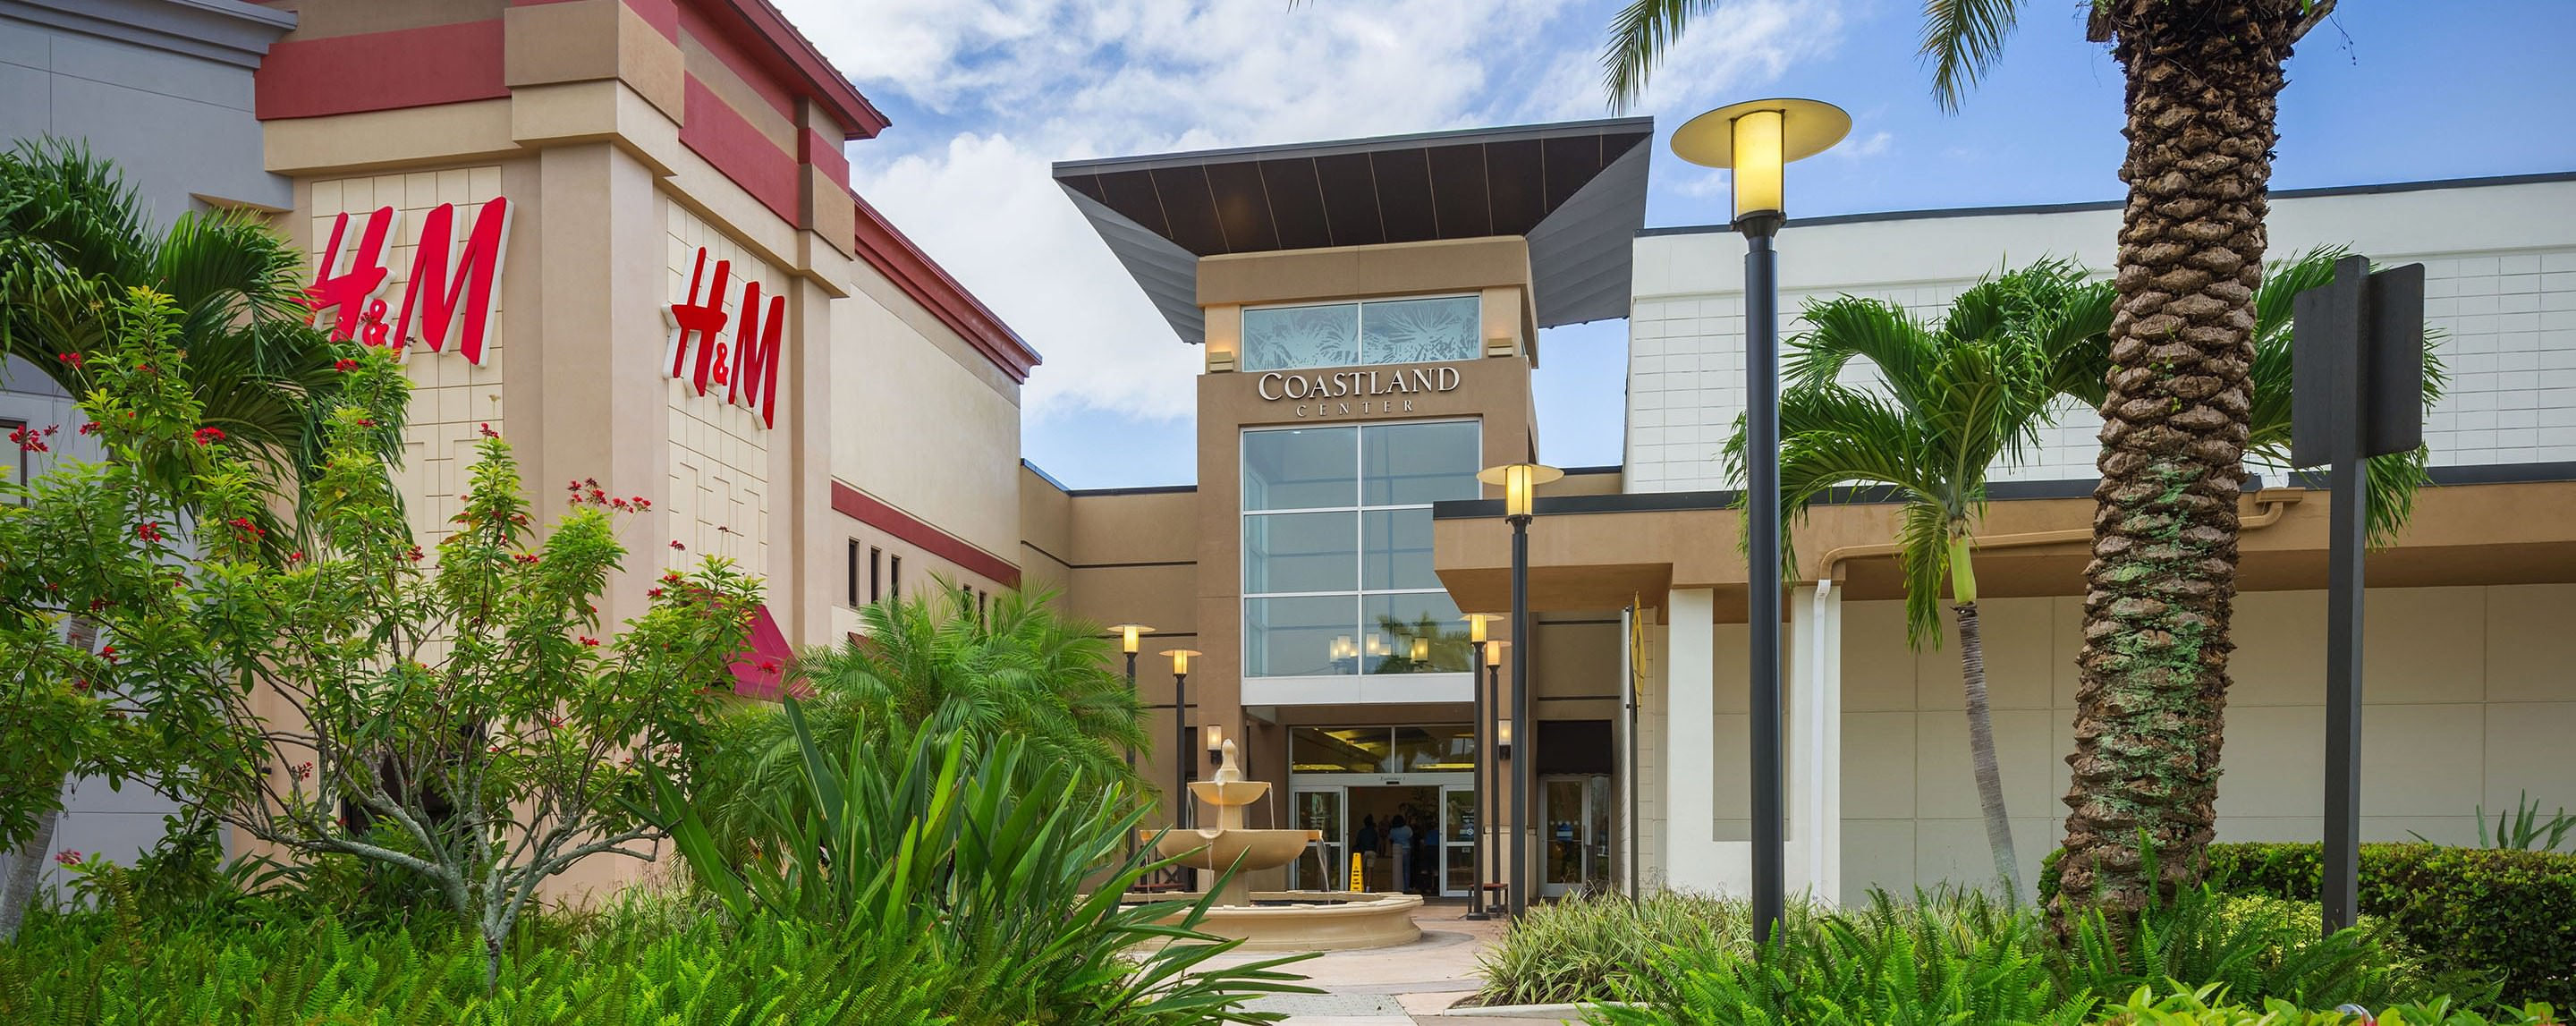 Entrance to Coastland Center. There's an H&M to the left and a fountain before the entryway.